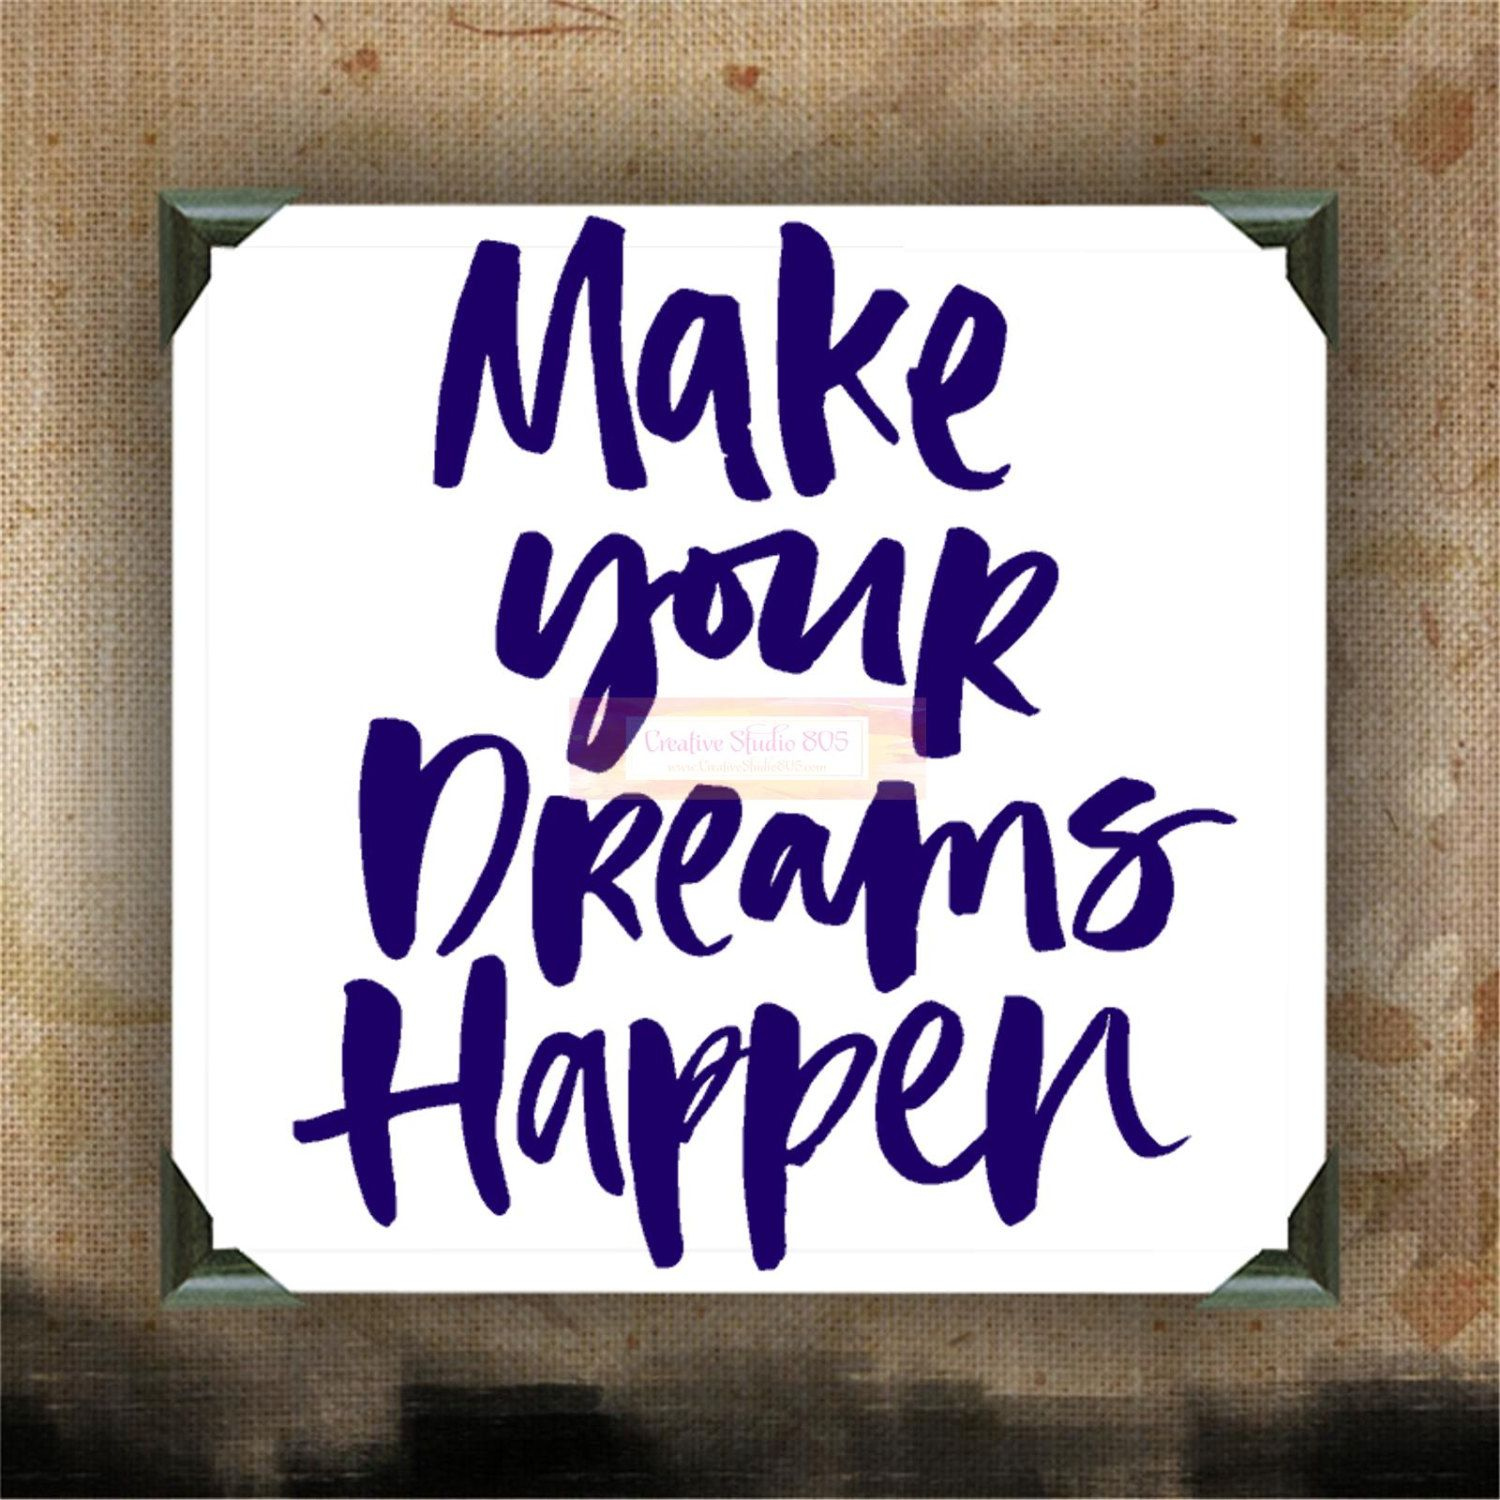 "Make Your Dreams Happen | decorated canvas | wall hanging | wall decor | inspirational quote on canvas | 12"" x 12"" by CreativeCanvases805 on Etsy"